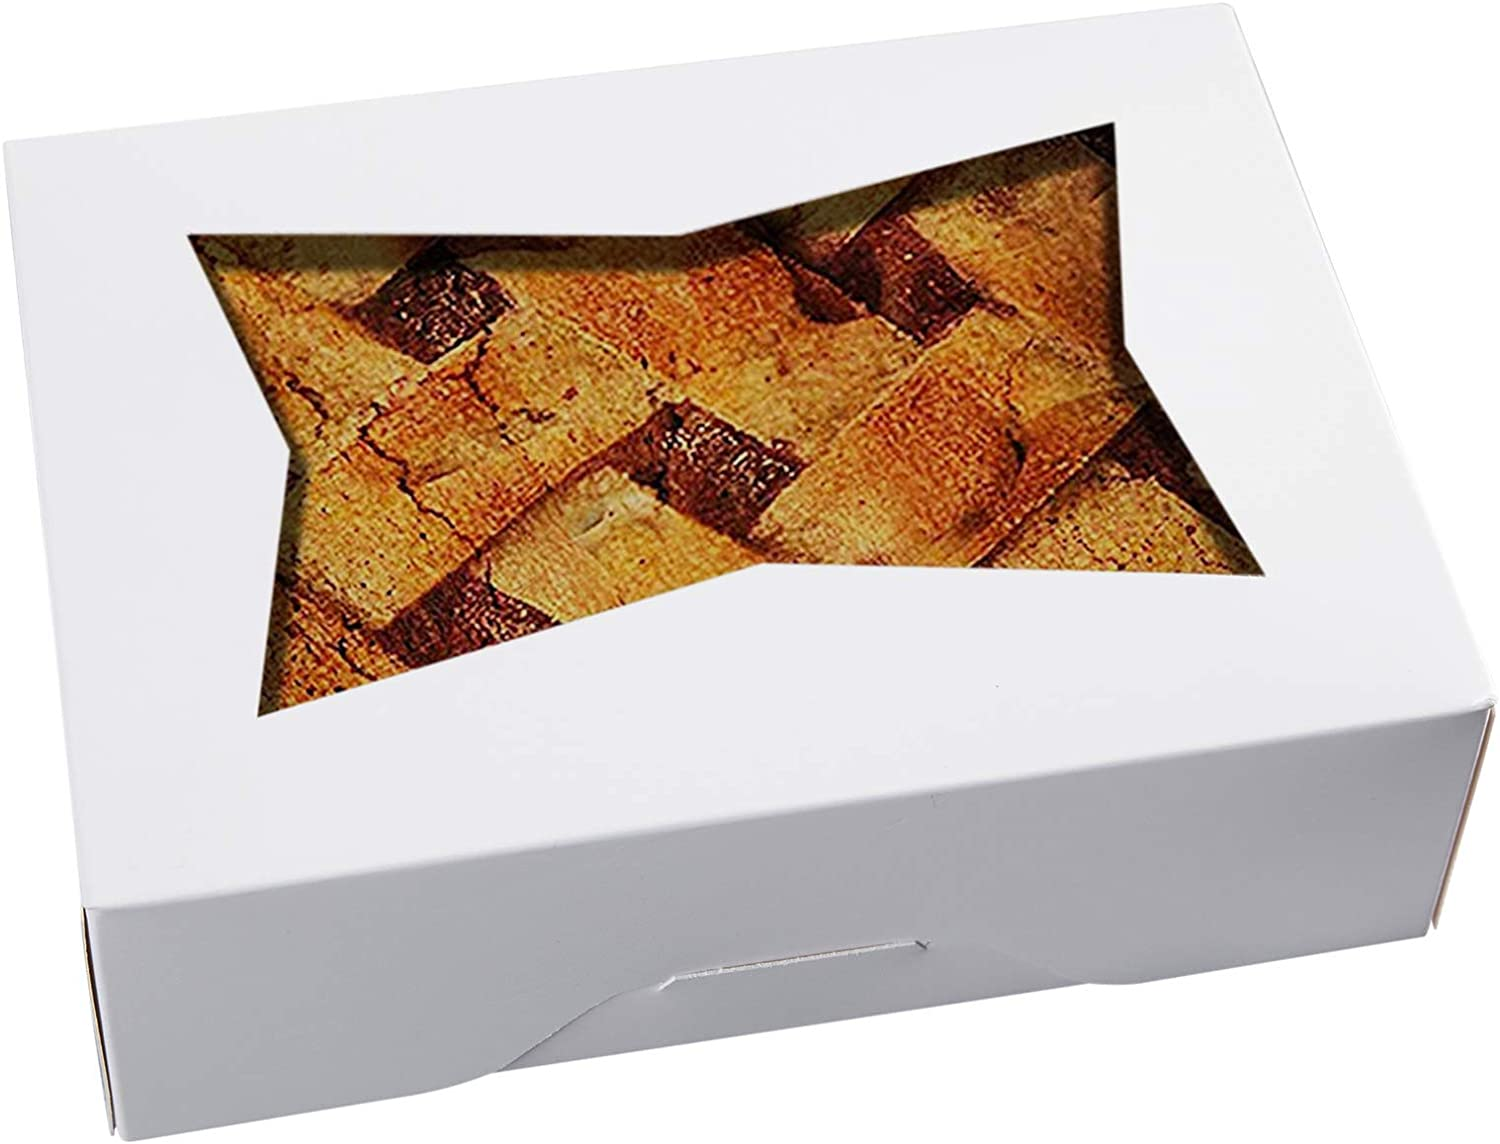 [25pcs]8inch Cookie Boxes with Window Lid,White Cardboard Pops Treat Gift Bakery Box for Muffins and Pastry,Strawberries Chocolate Container in Bulk 8